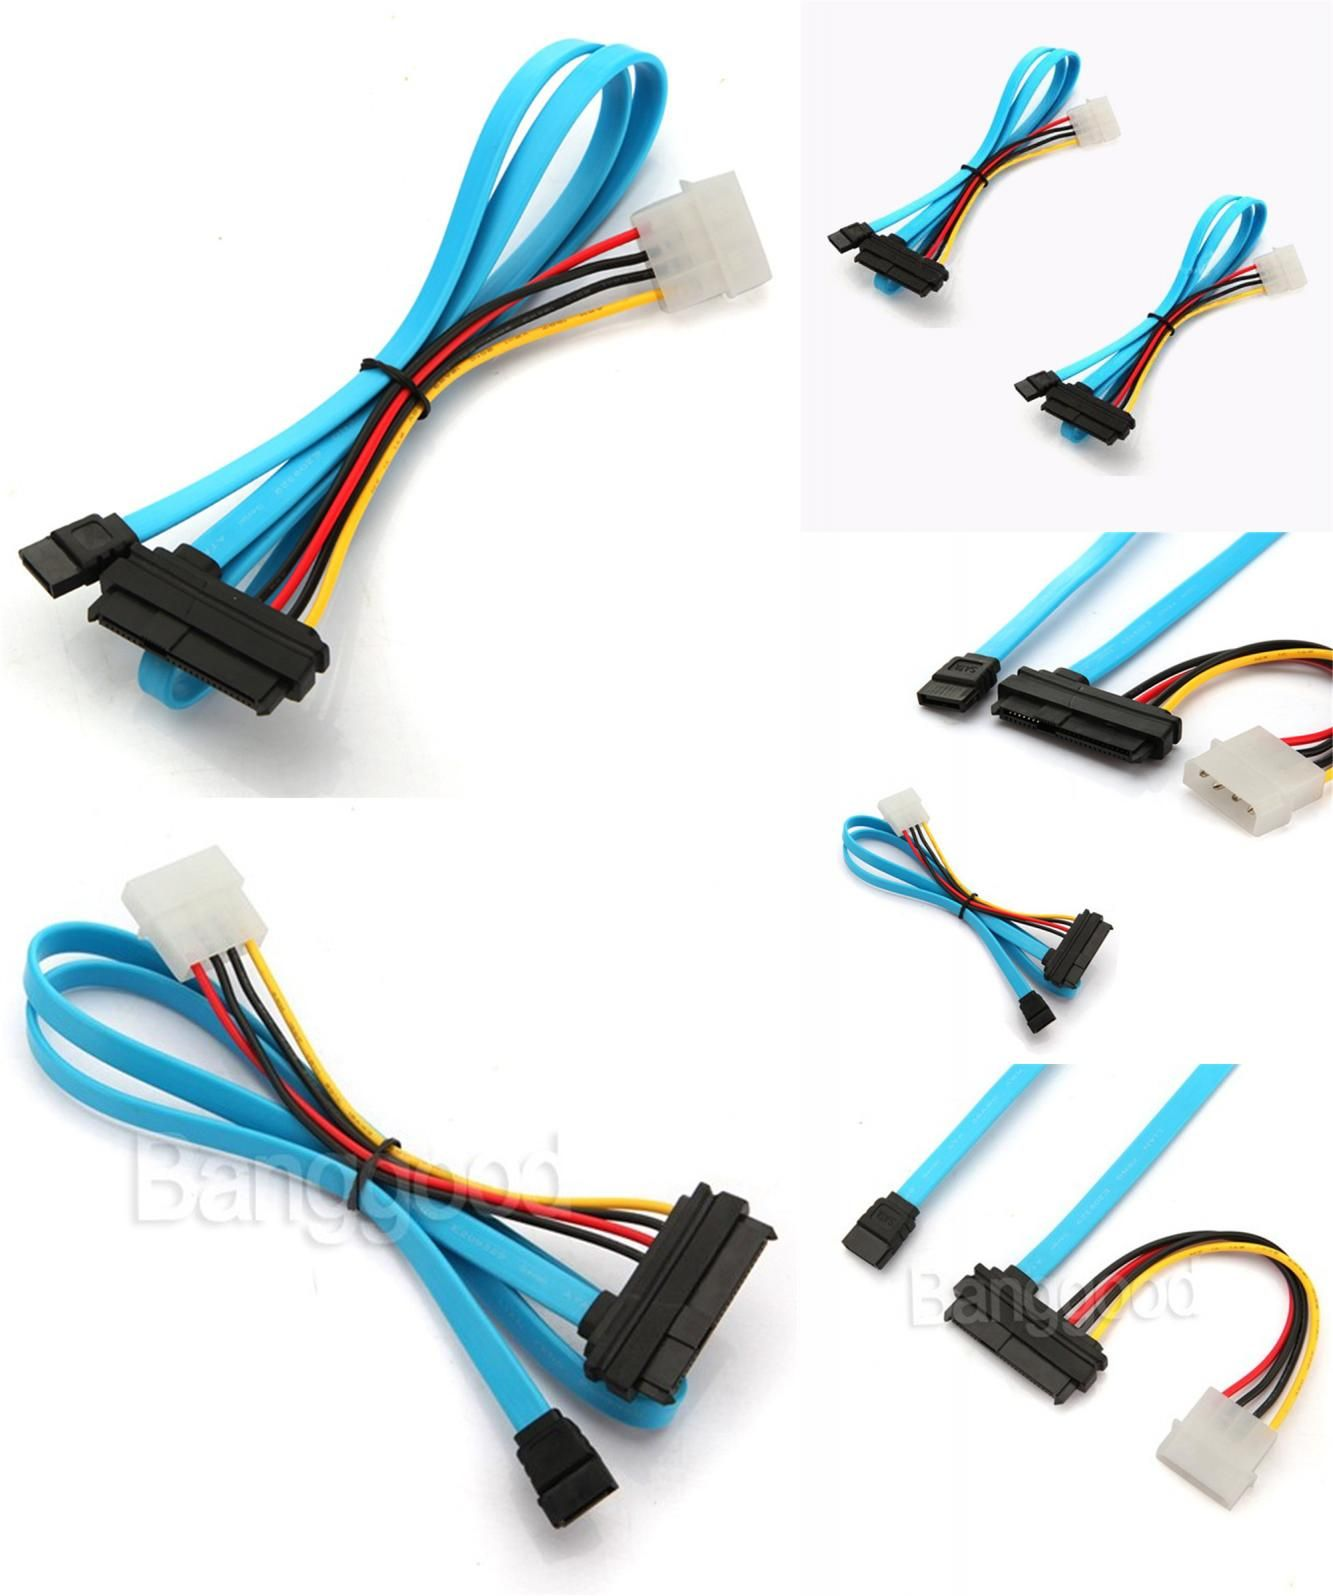 visit to buy 1pcs 7 pin sata serial female ata to sas 29 pin connector cable 4 pin male power cable adapter converter for hard disk drive advertisement [ 1333 x 1596 Pixel ]